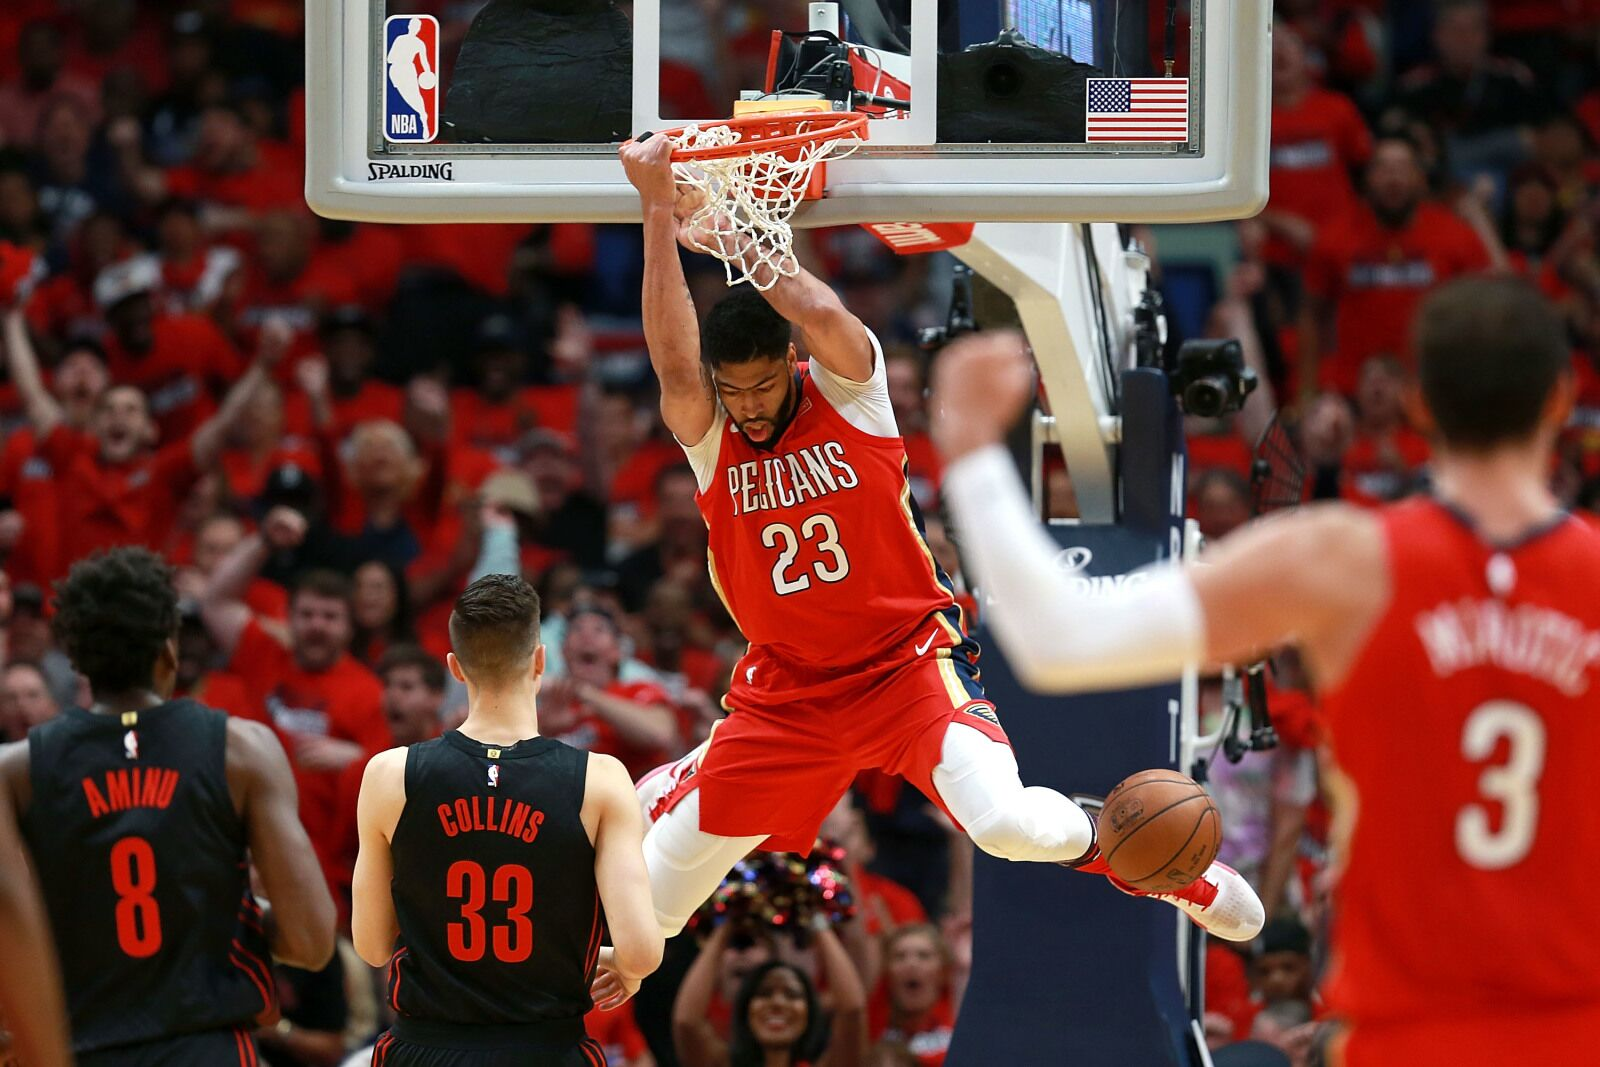 New Orleans Pelicans 3 Takeaways From Game 3 Vs. Blazers - Page 3